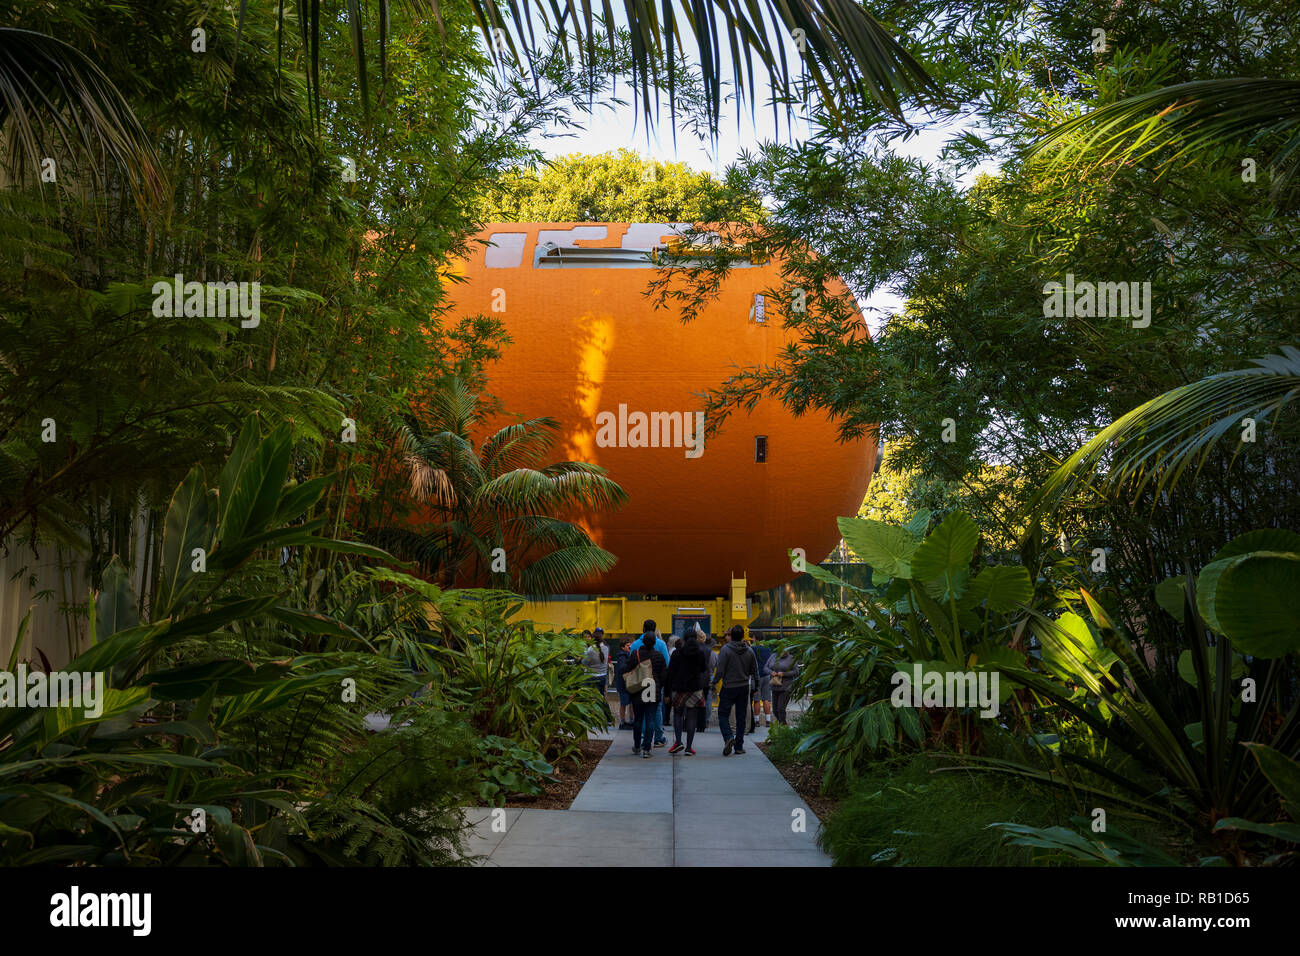 The California ScienCenter, home of NASA's Space Shuttle Endeavour in the Samuel Oschin Pavilion, and the last Space Shuttle external tank on Earth. - Stock Image